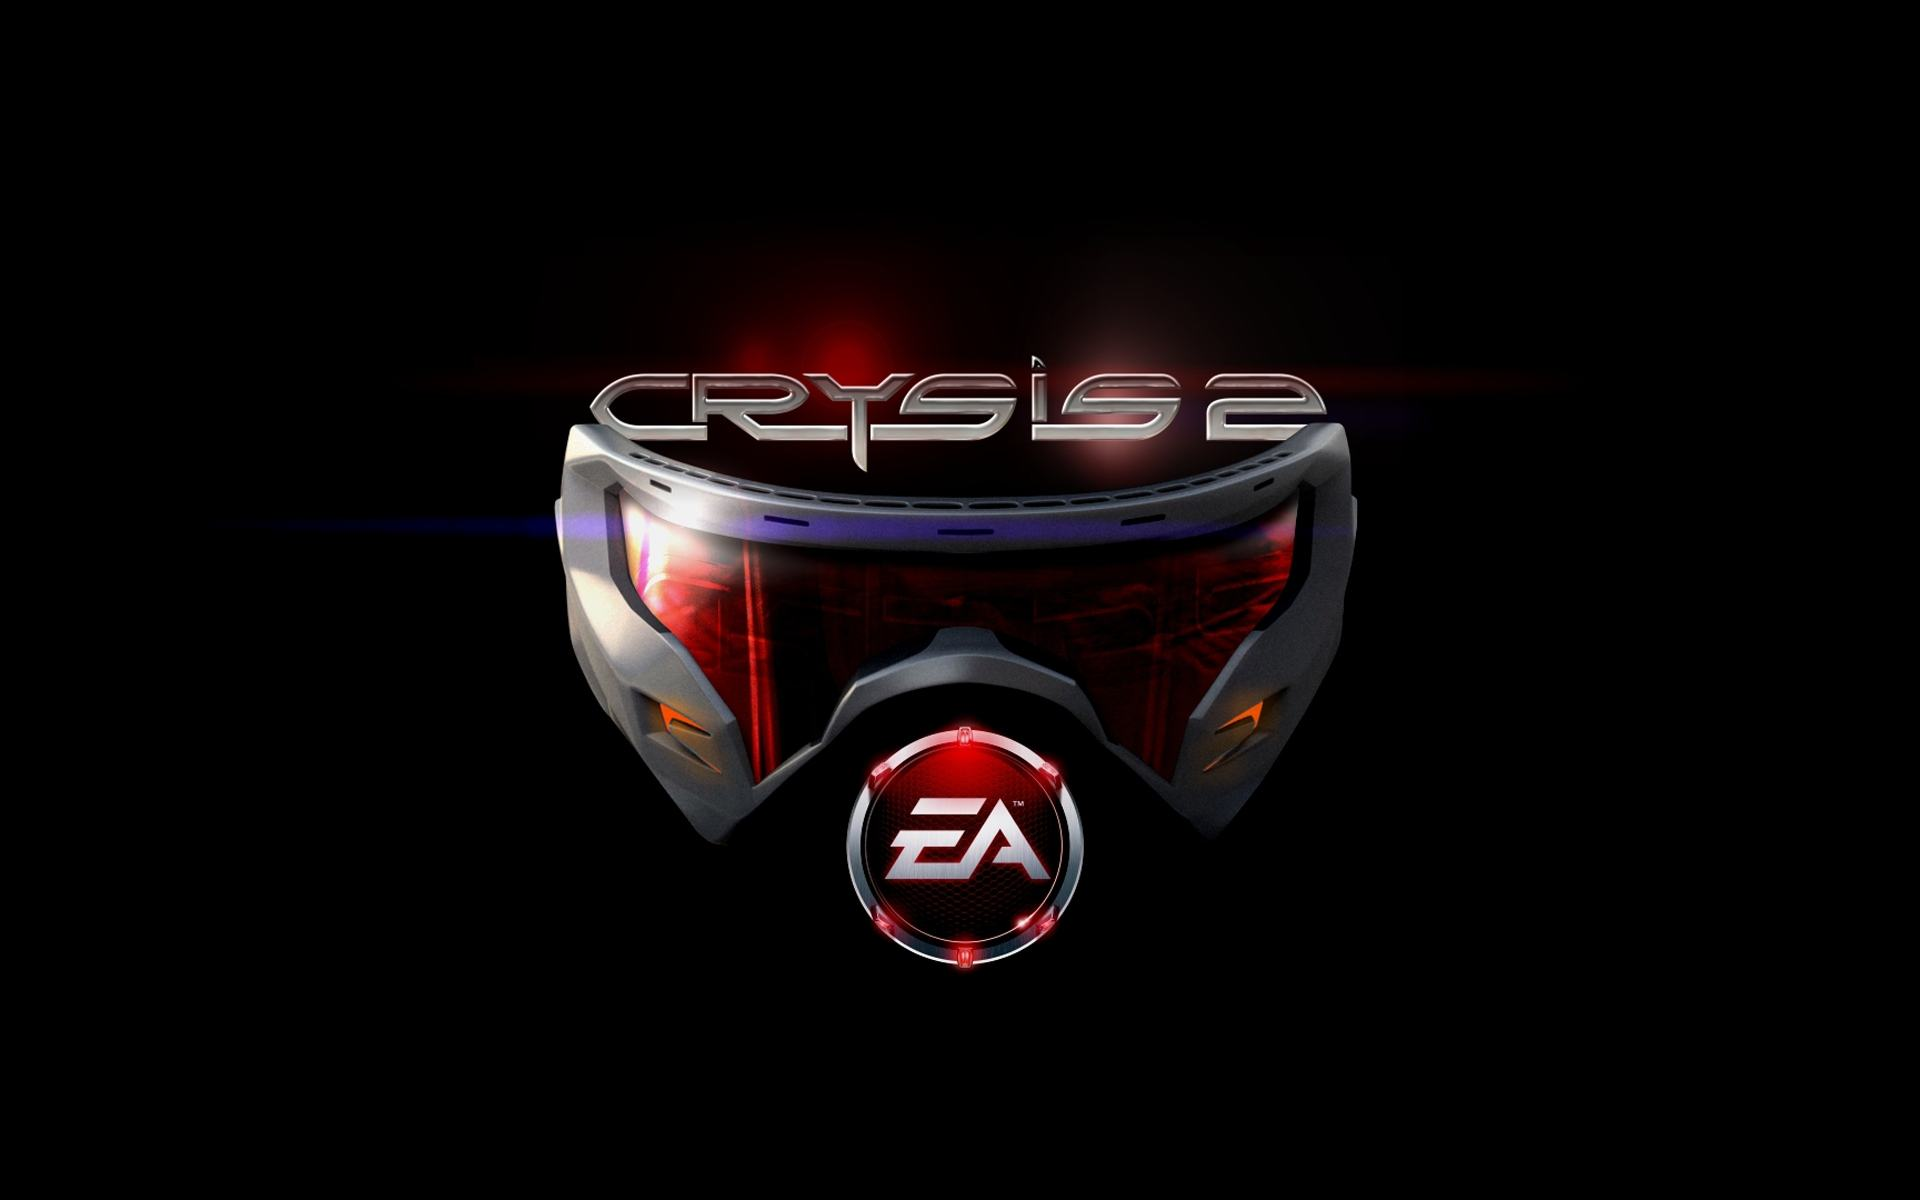 Обои Crysis 2 EA Games 1920x1200